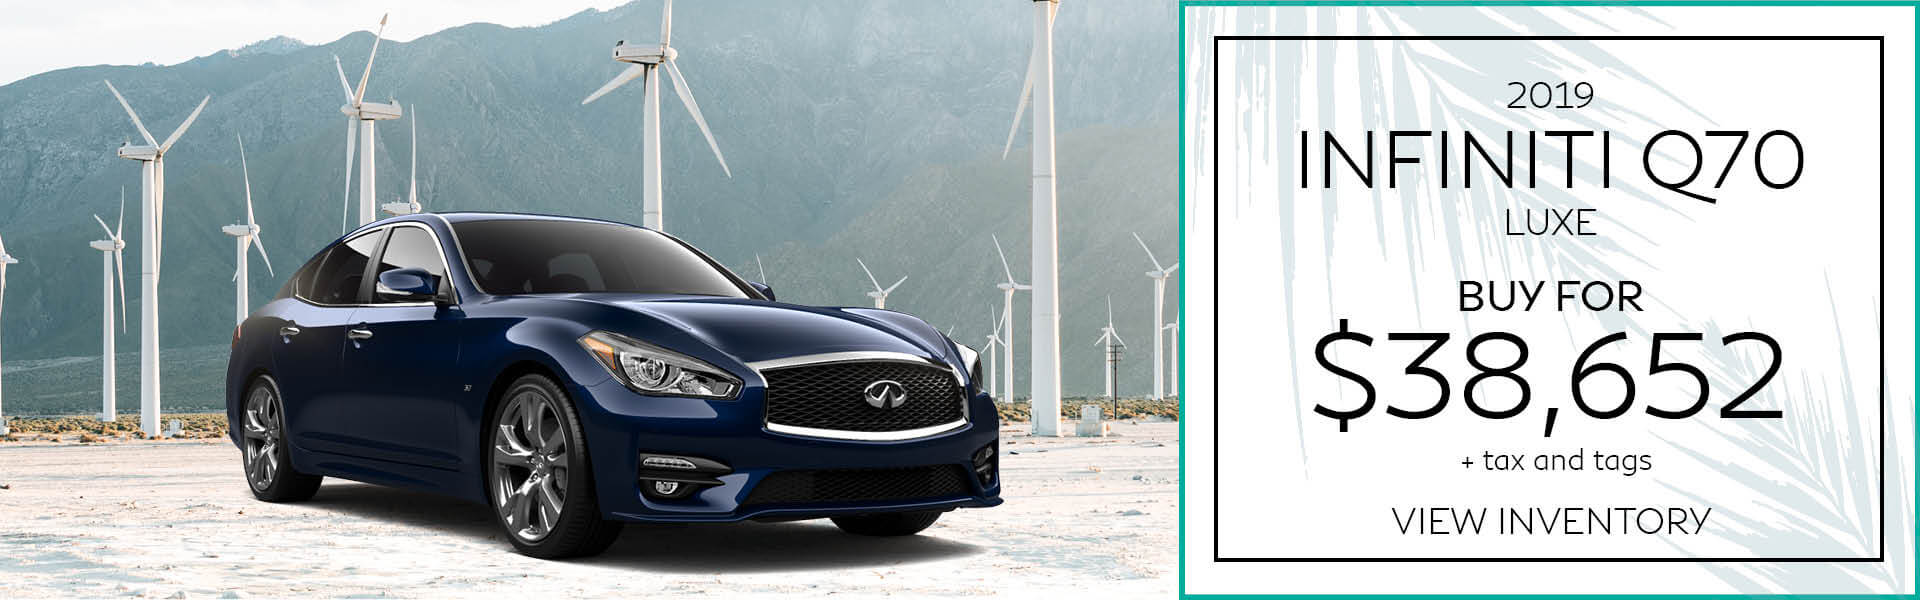 Q70 - Buy for $38,652